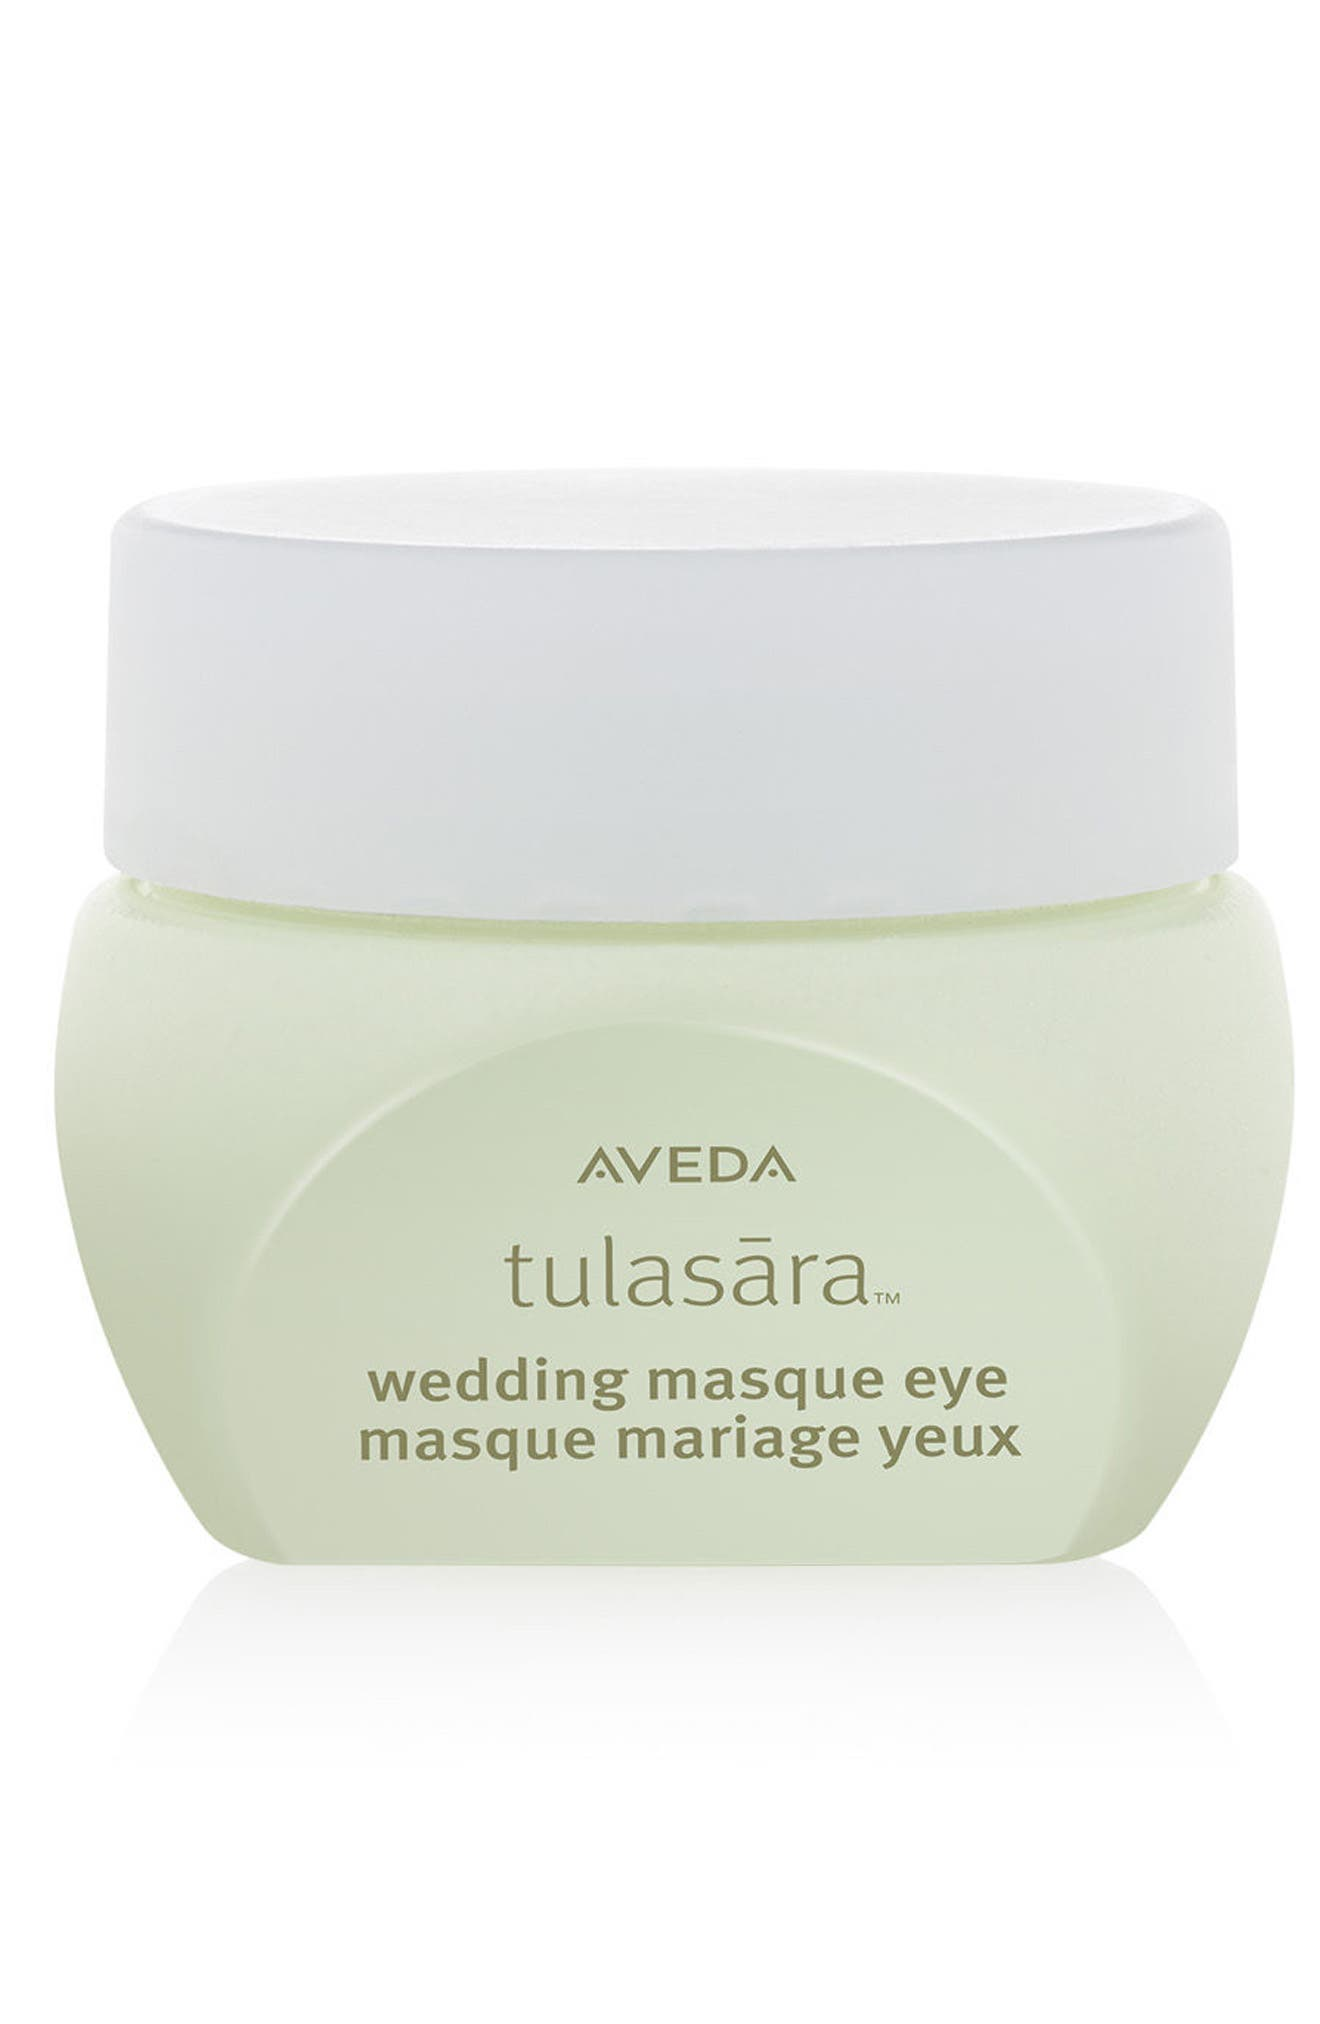 Aveda tulasara™ Wedding Masque Eye Overnight